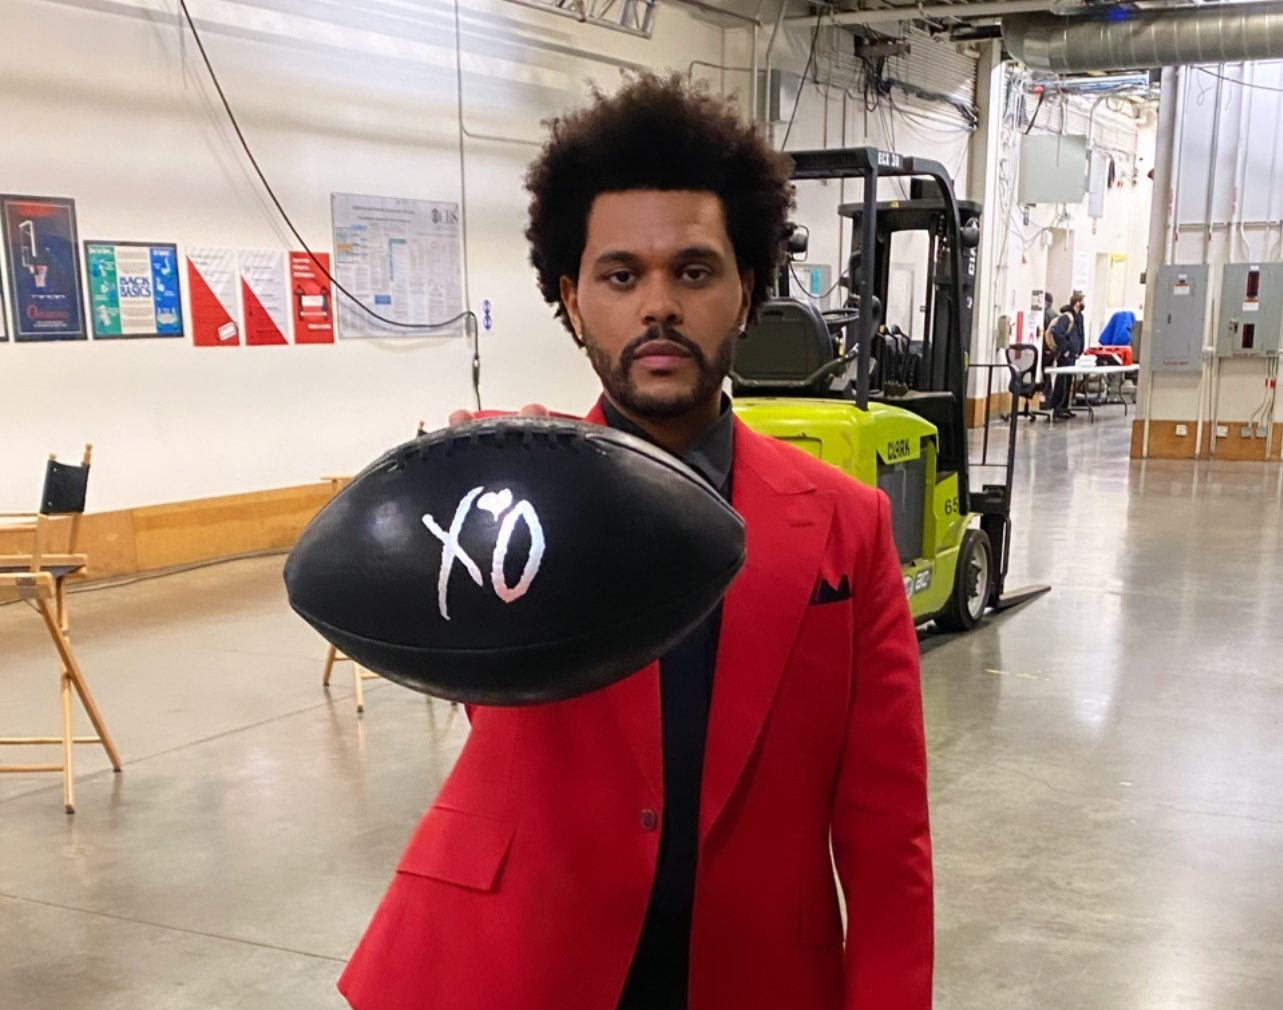 Wilson Drops Limited-Edition Super Bowl Football Collaboration With The Weeknd - Rolling Stone